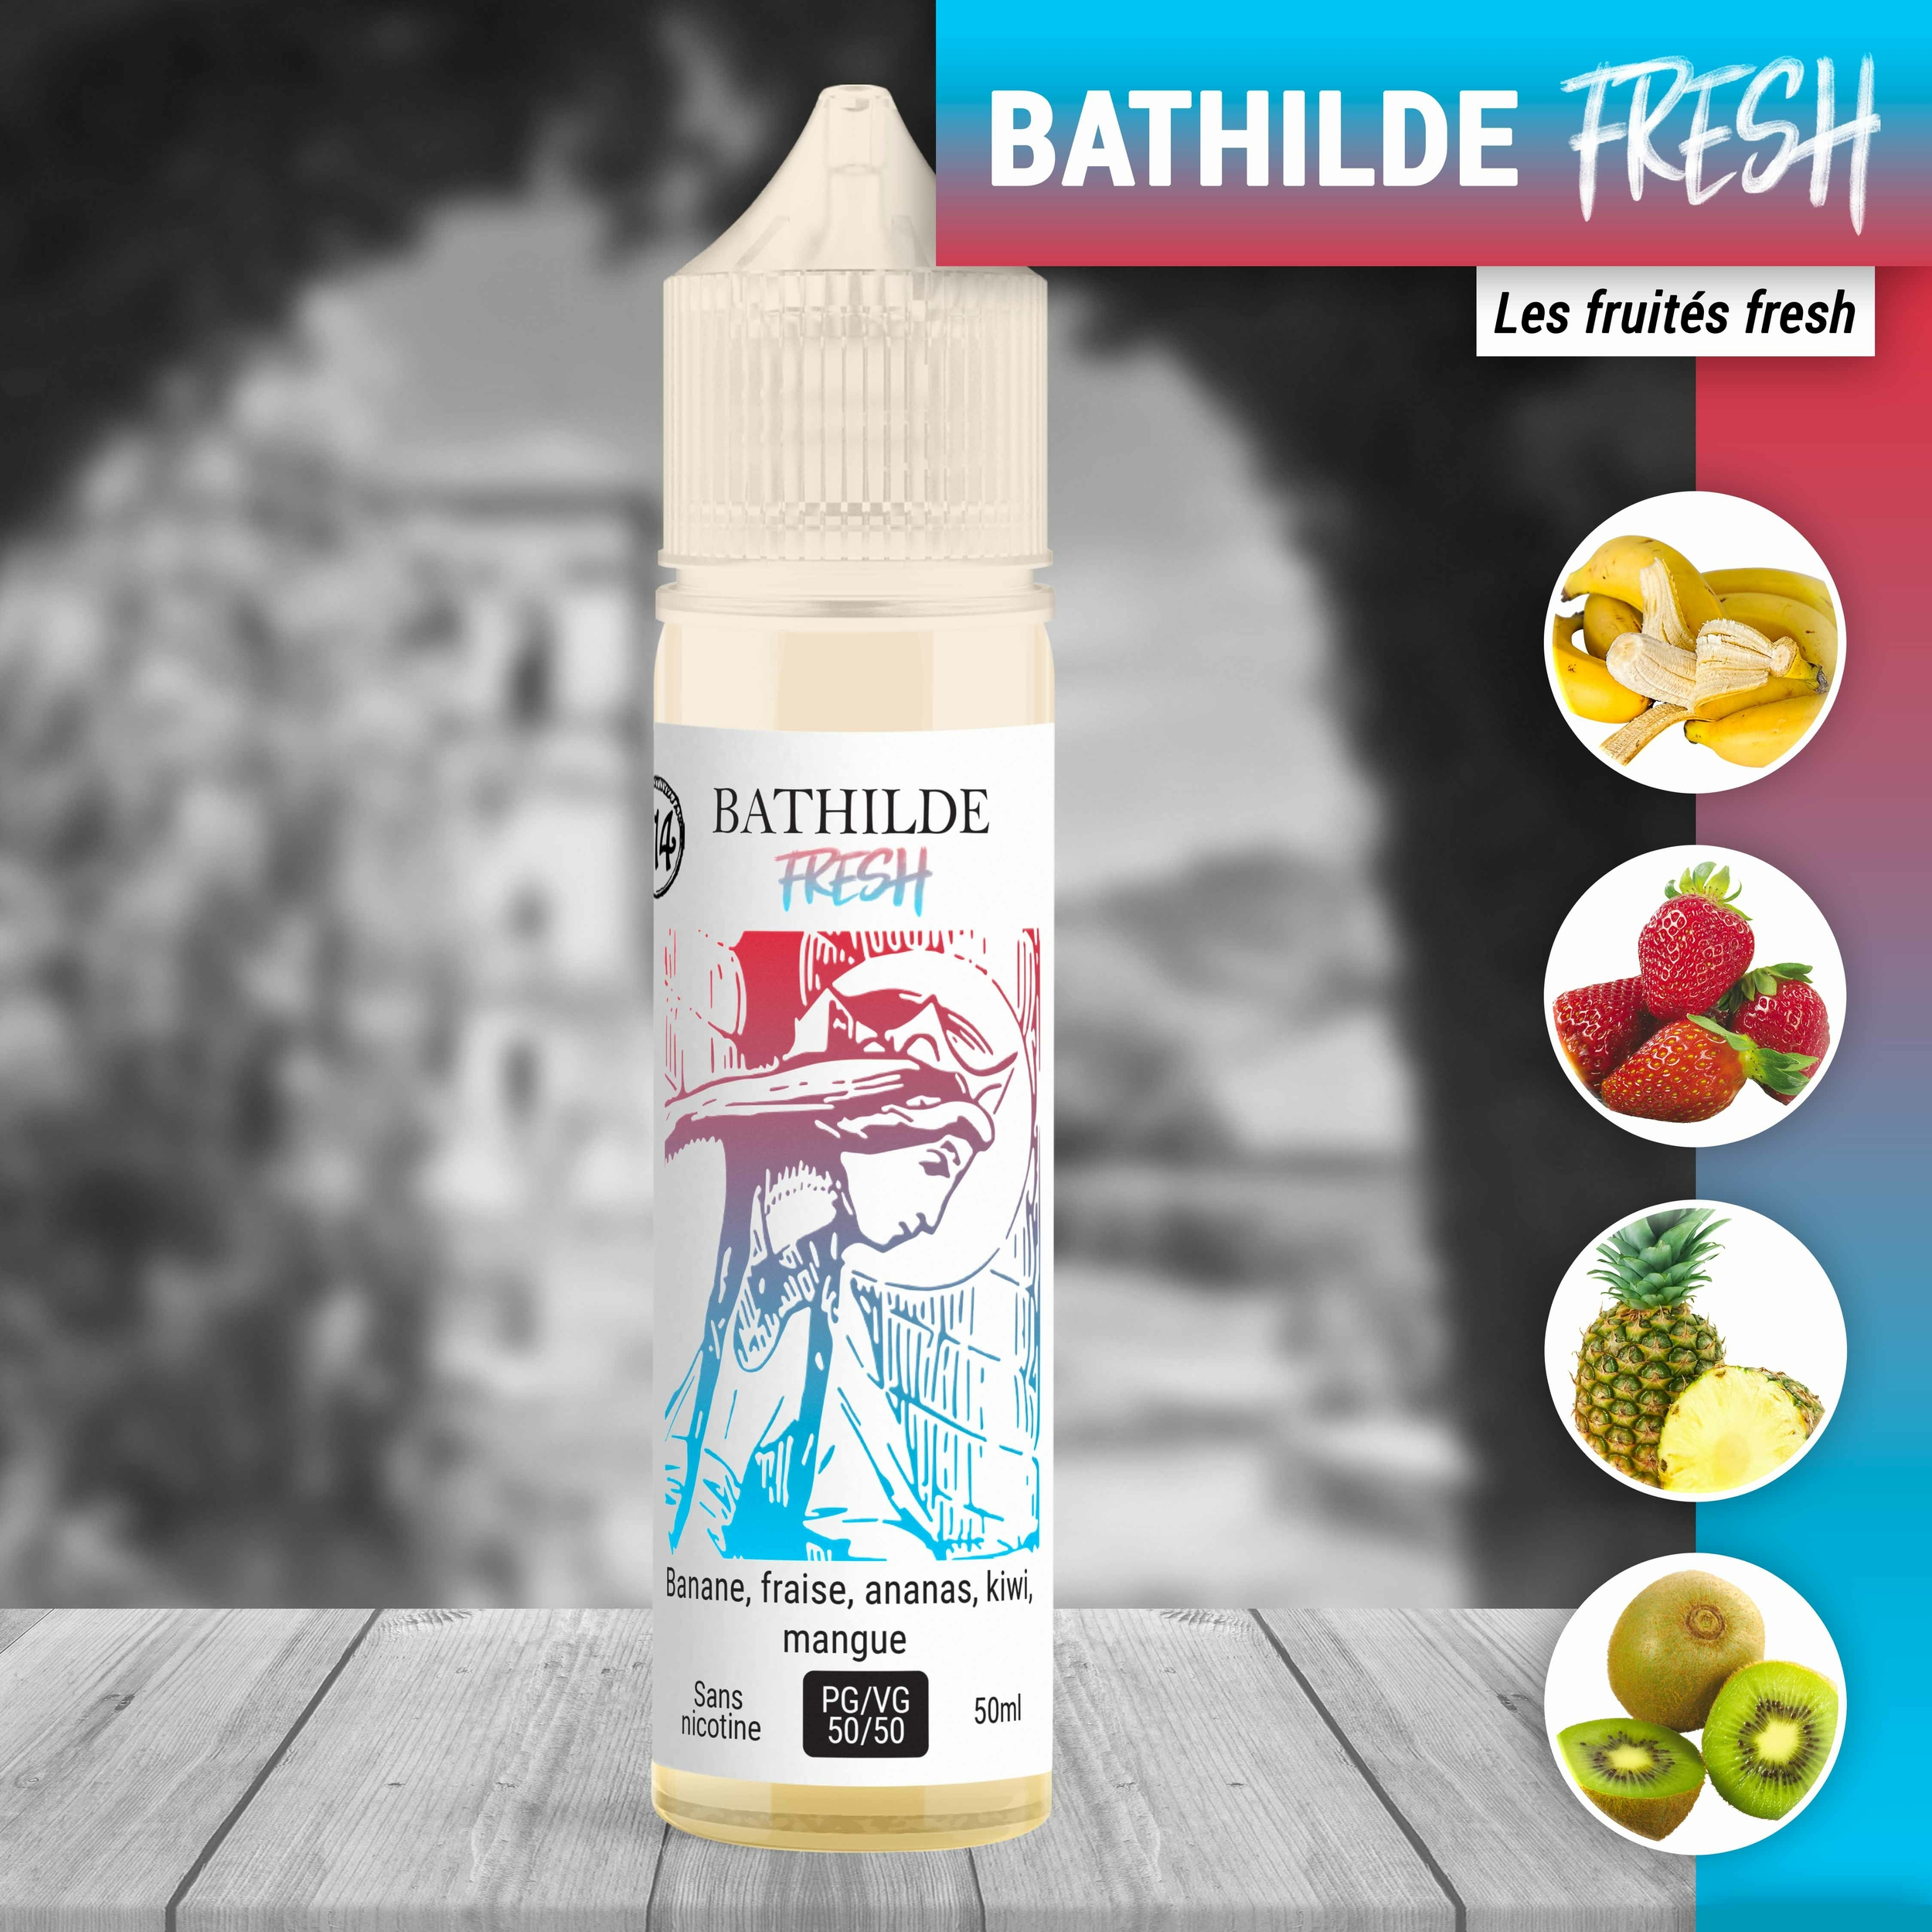 Bathilde fresh 50ml à booster